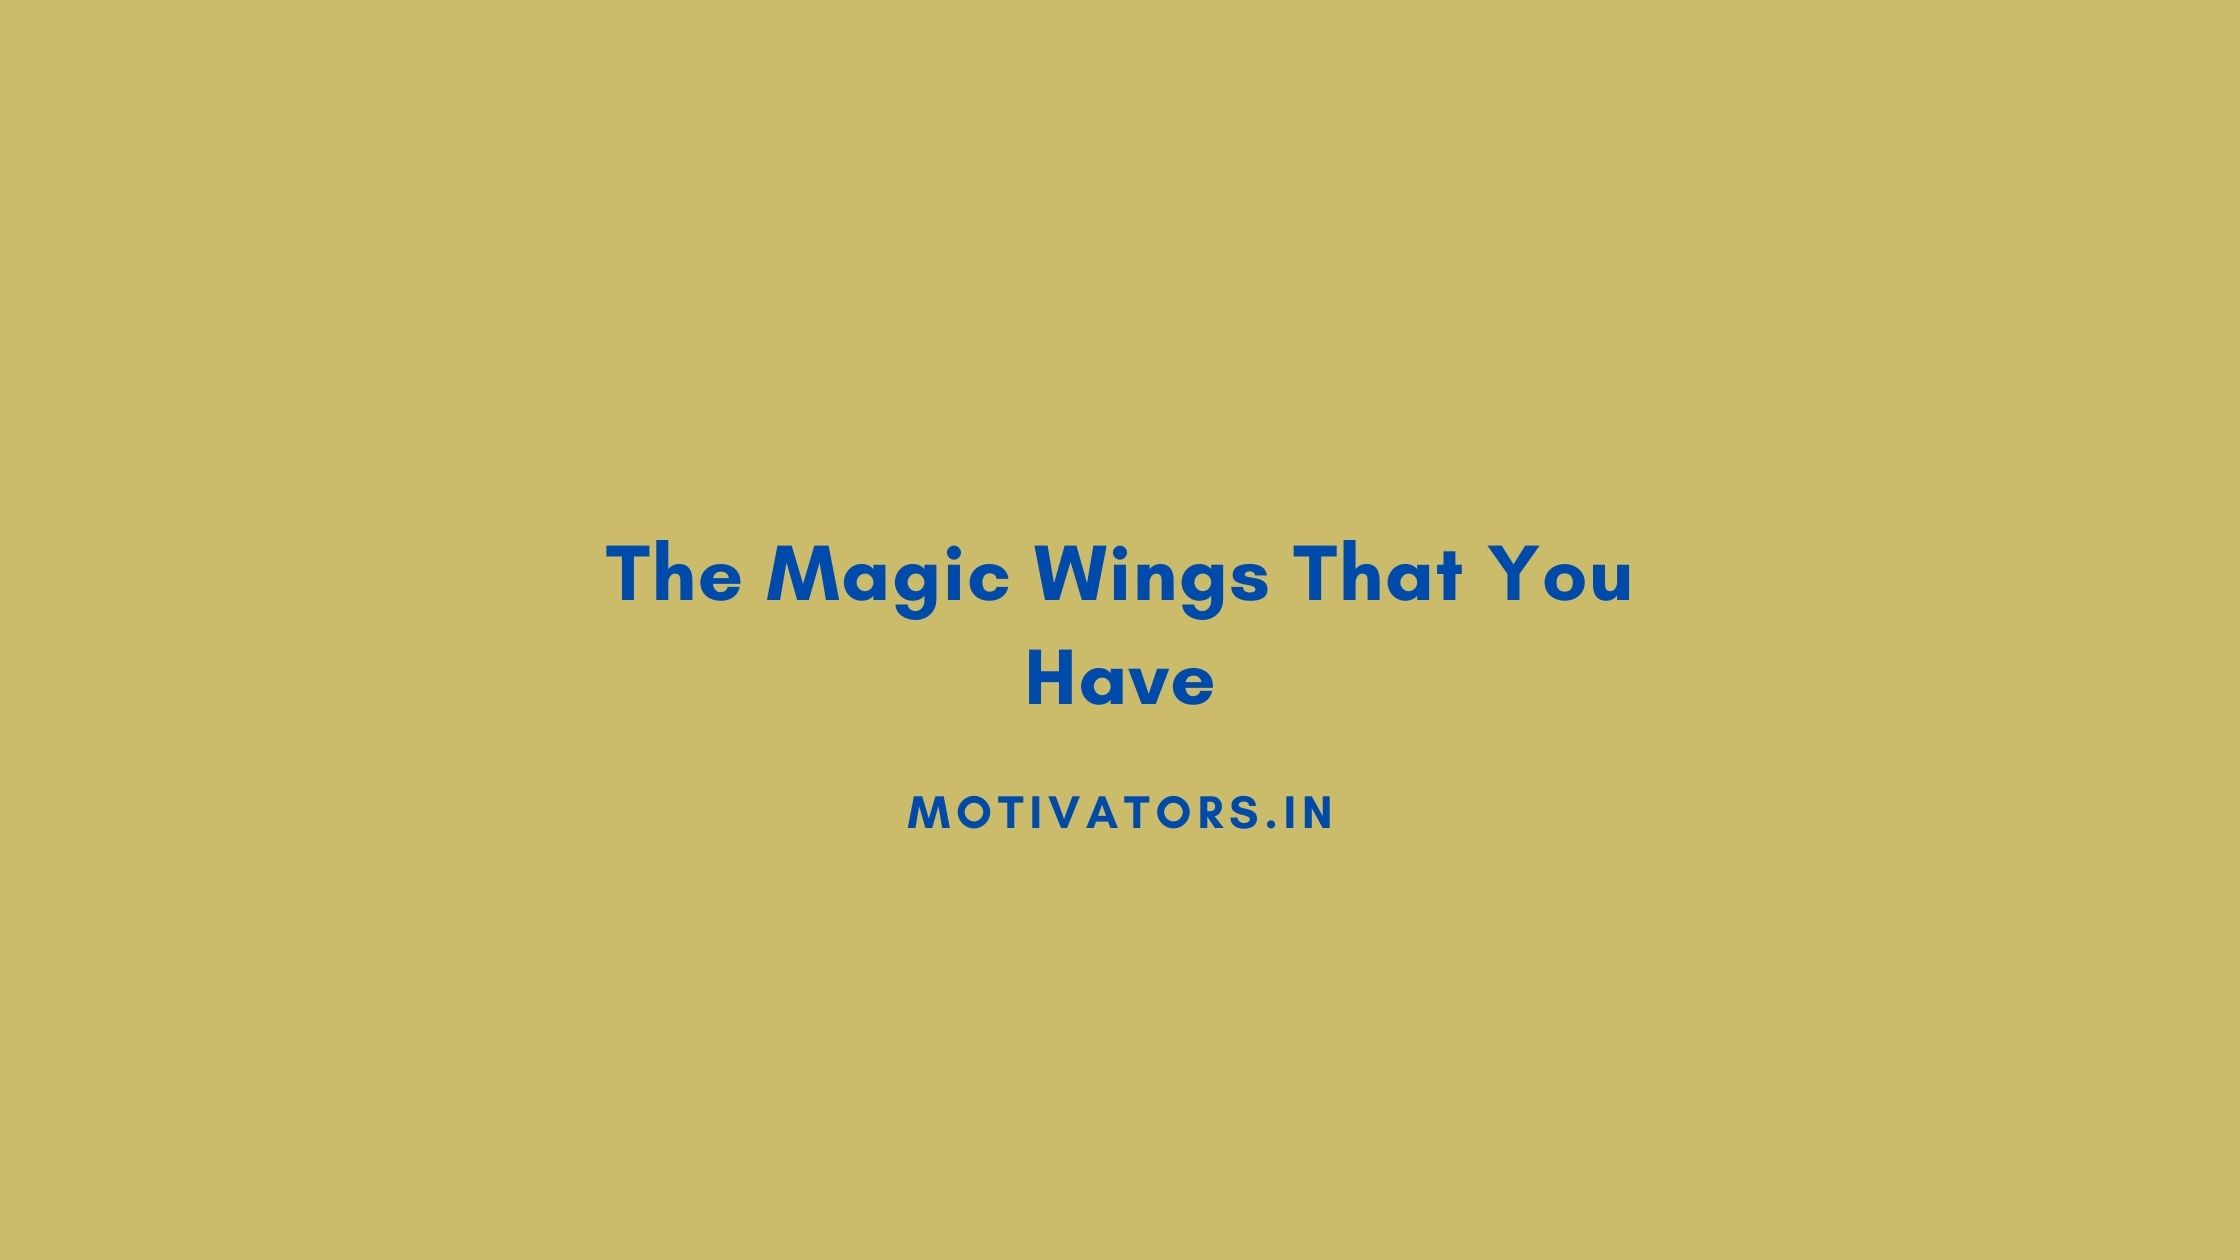 The Magic Wings That You Have